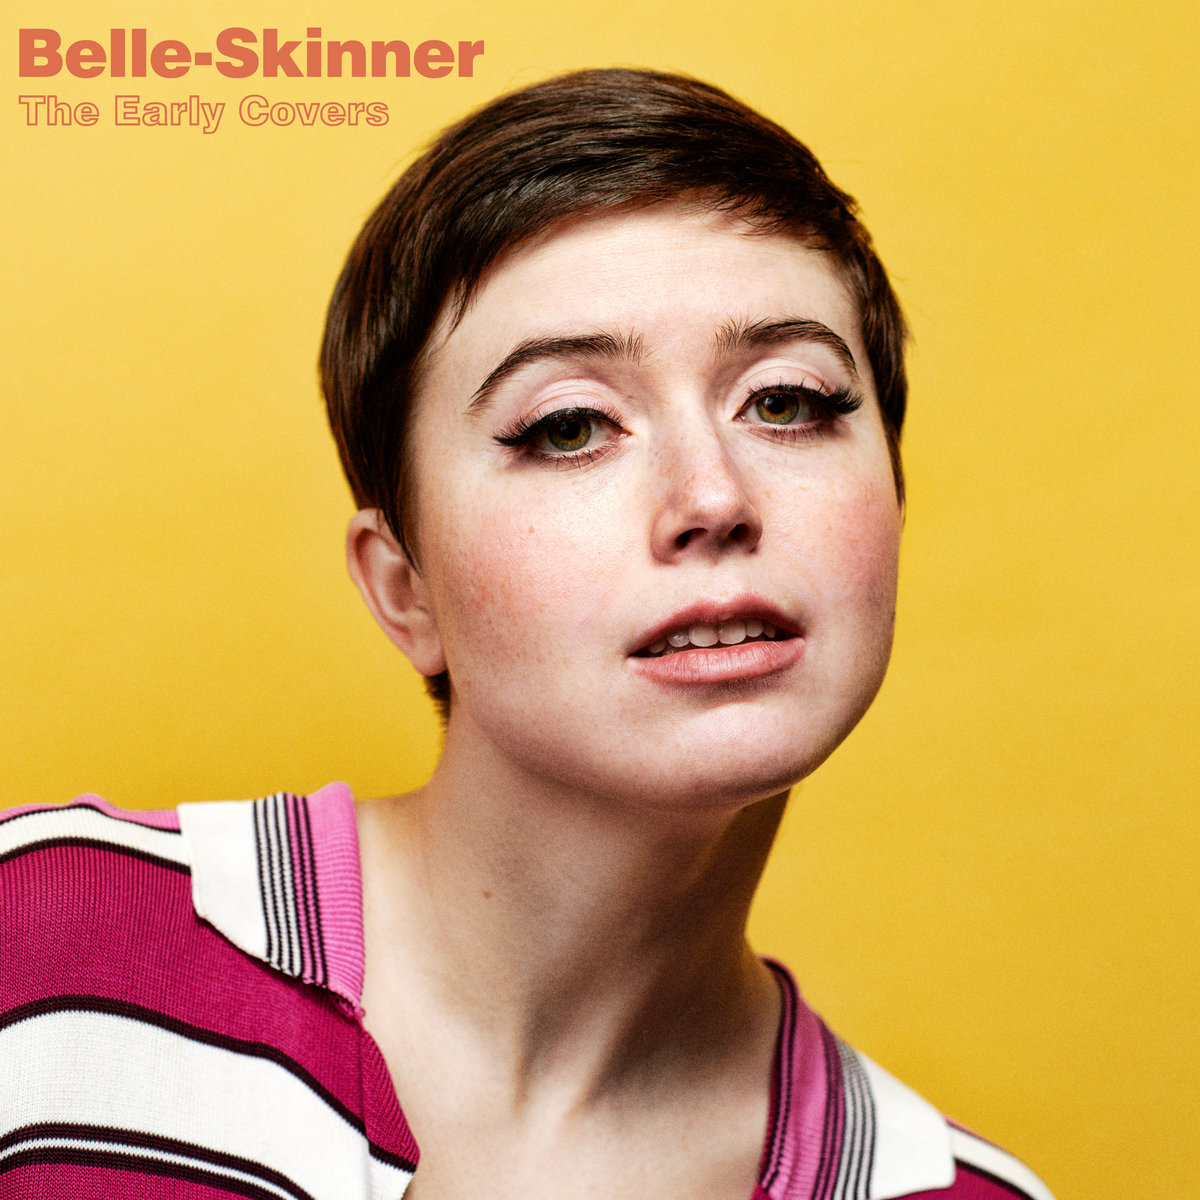 Belle Skinner - The Early Covers